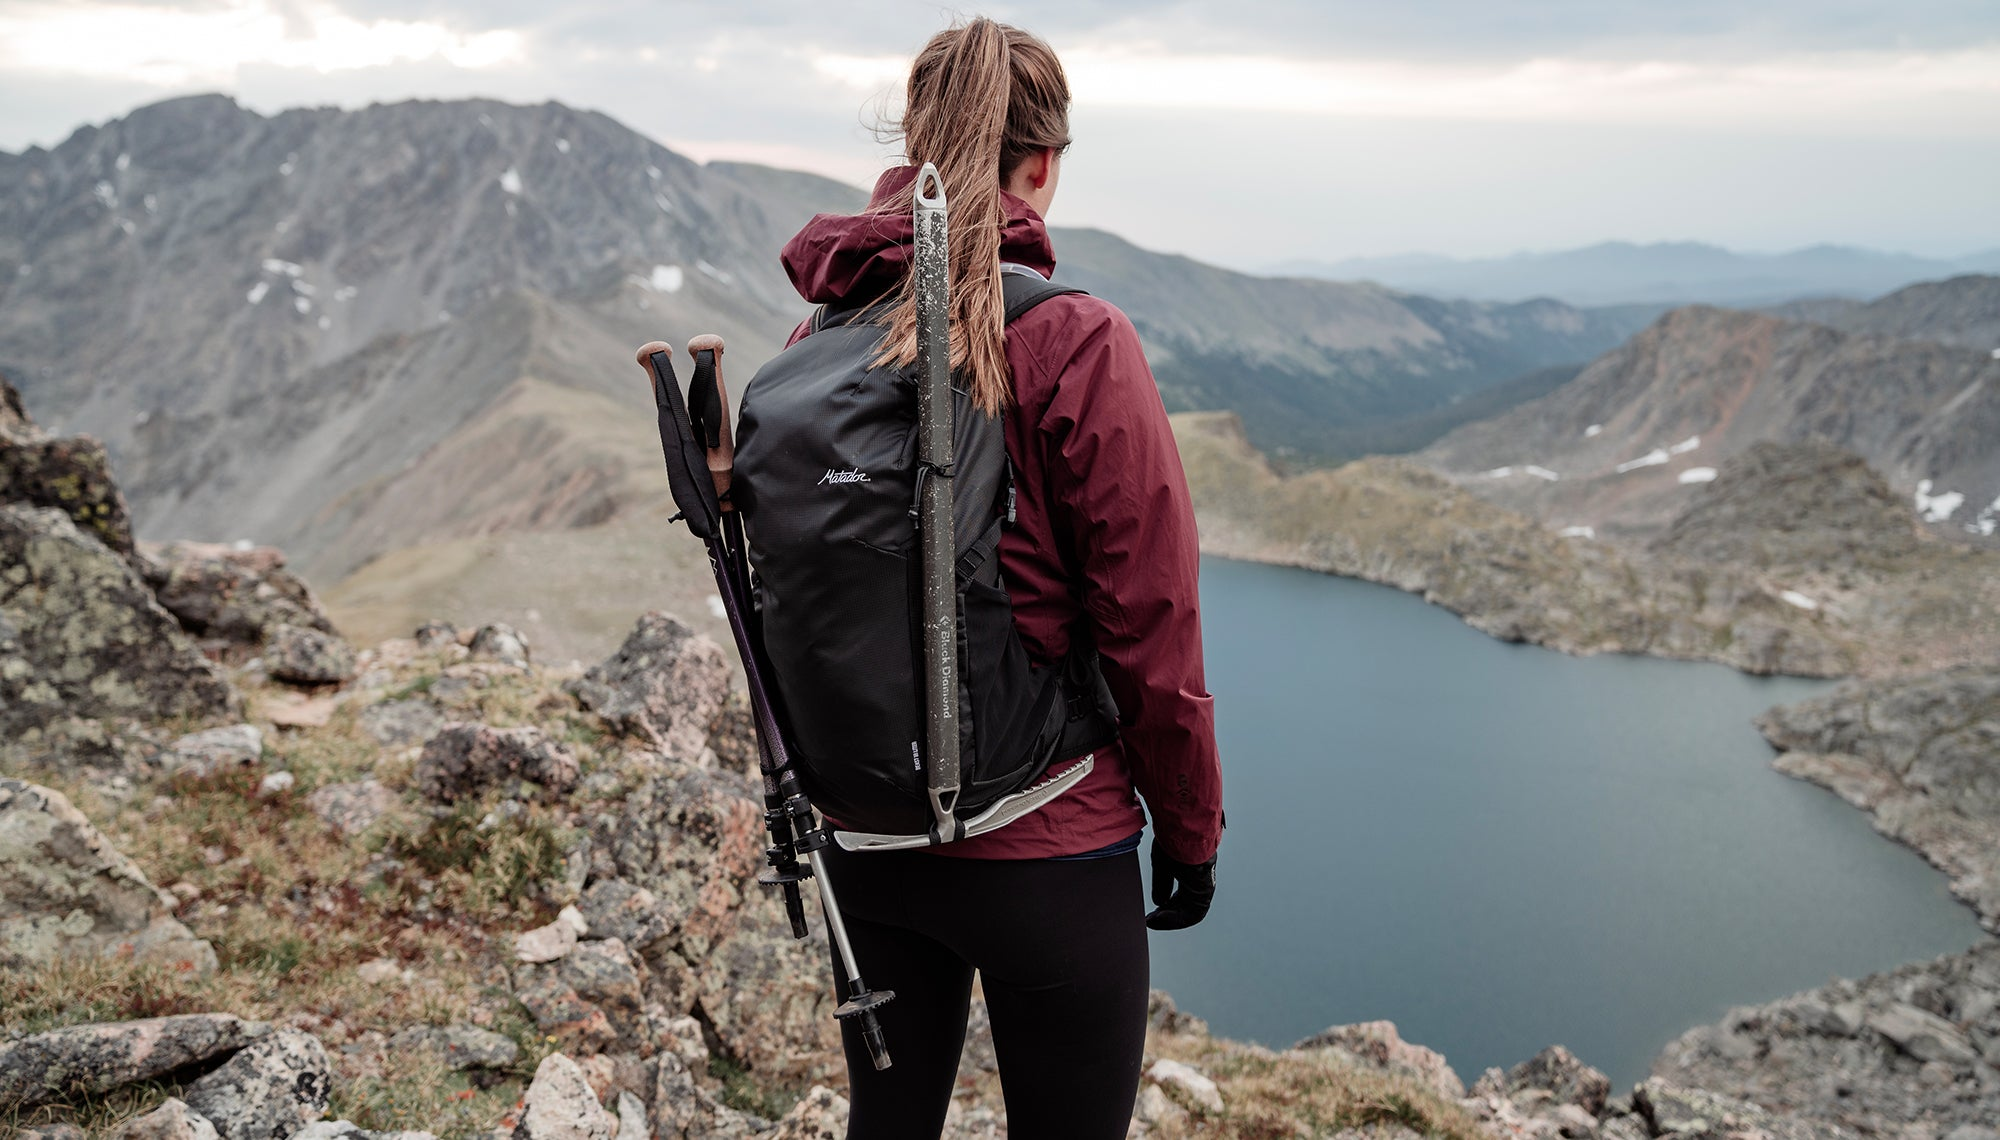 Back view of woman wearing a backpack, standing on a mountain ridge